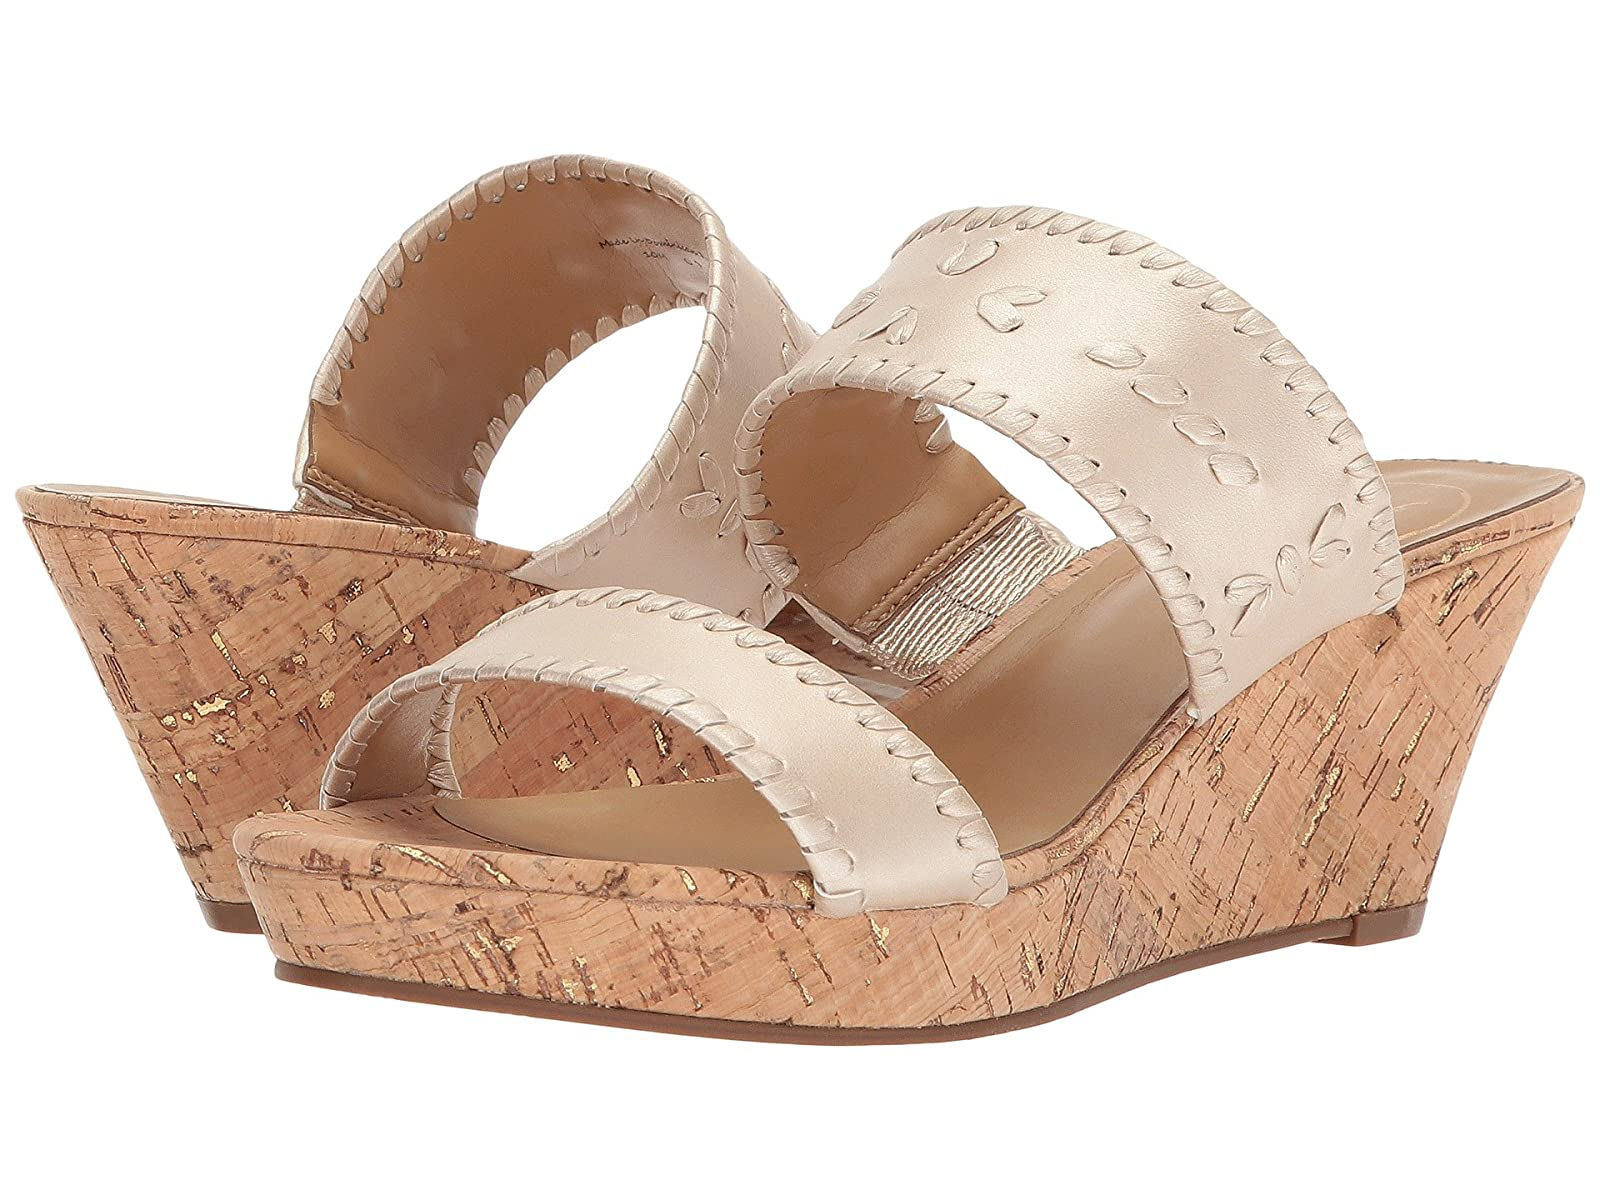 Jack Rogers EllaCheap and distinctive eye-catching shoes